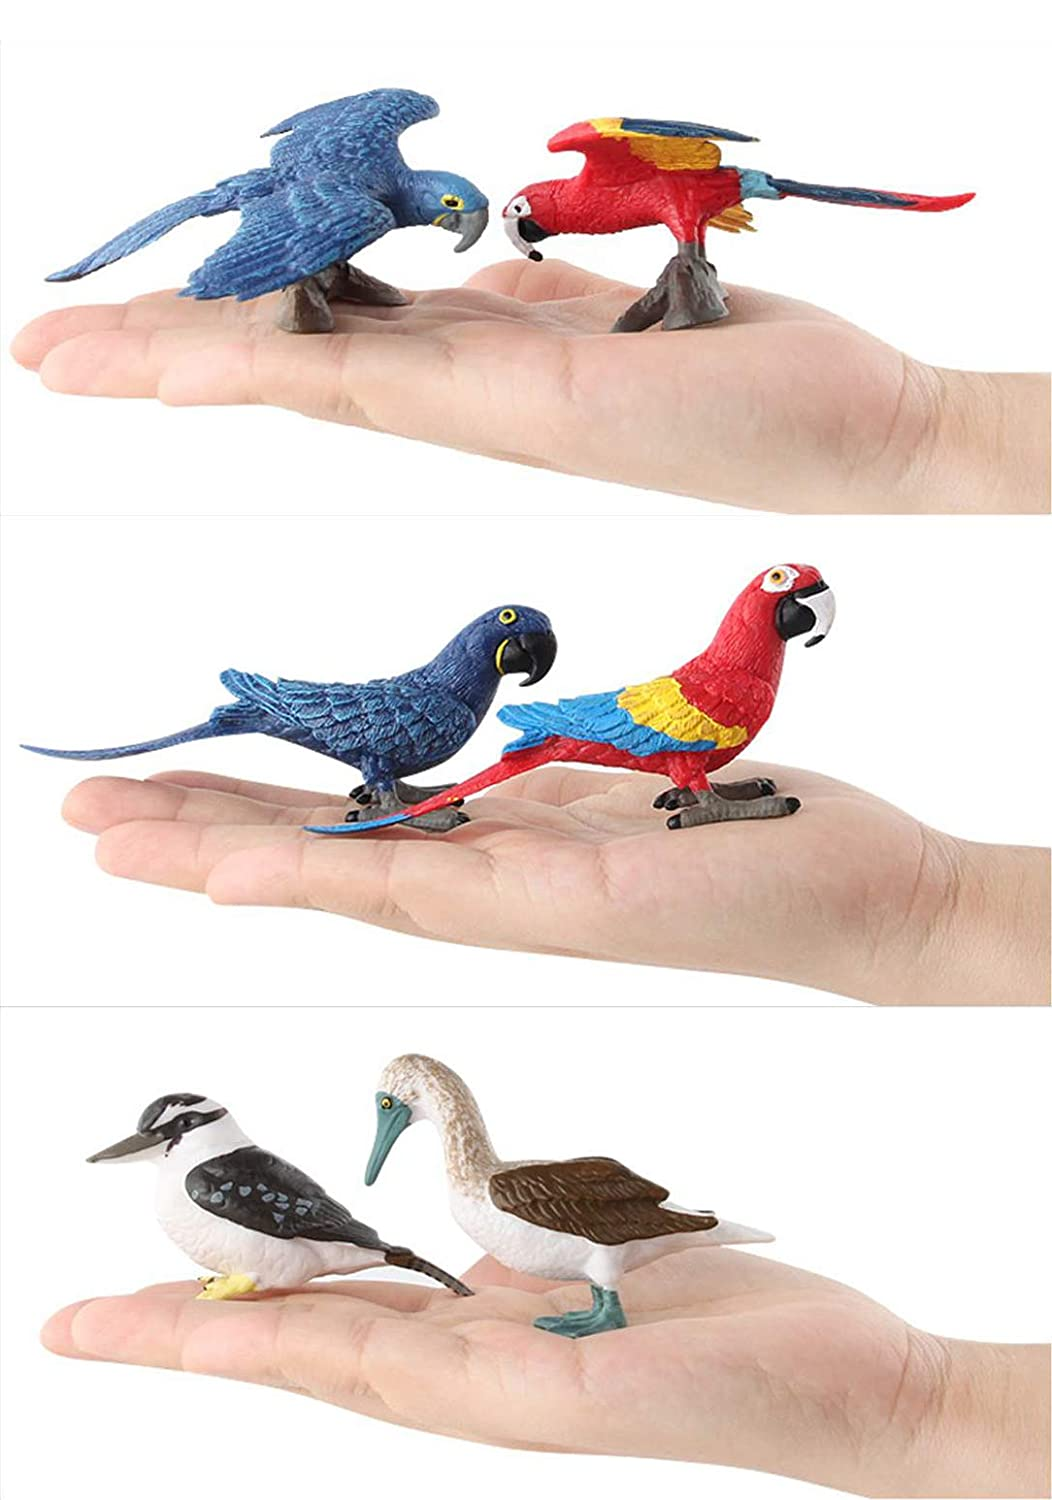 HiPlay Bird Toy Figures 6 Packs Set-Realistic Design with Amazing Detail Hand-Painted Lifelike Aves Models for Kids//Collectors HP-D019